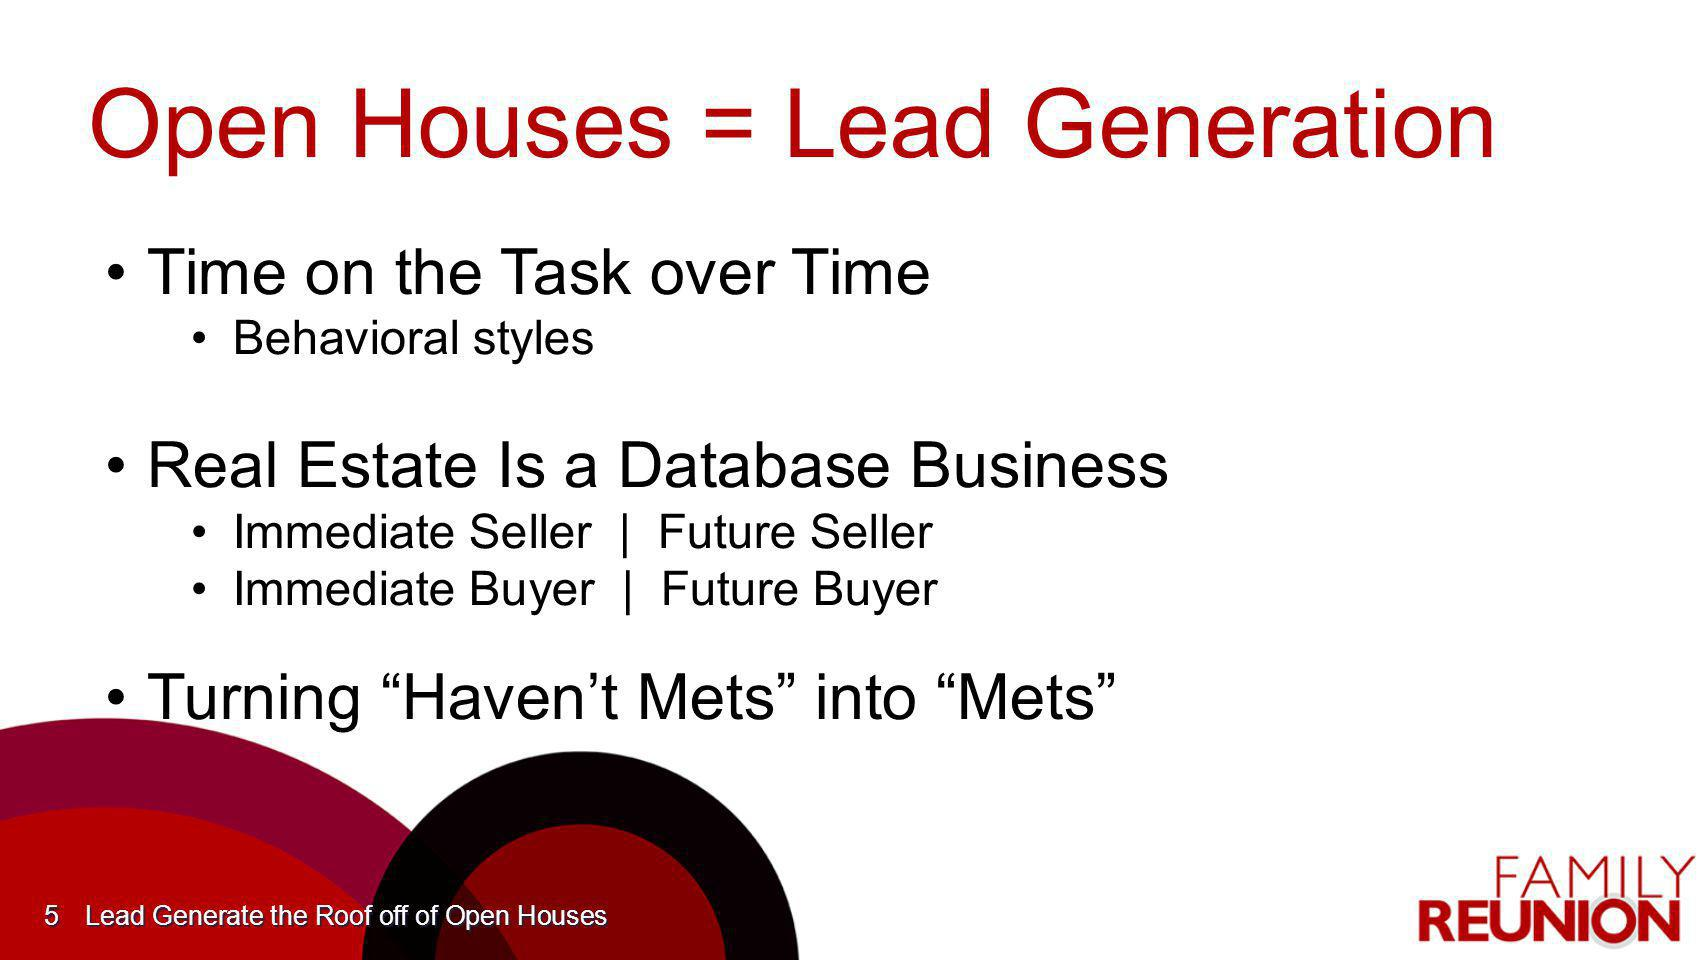 Open Houses = Lead Generation